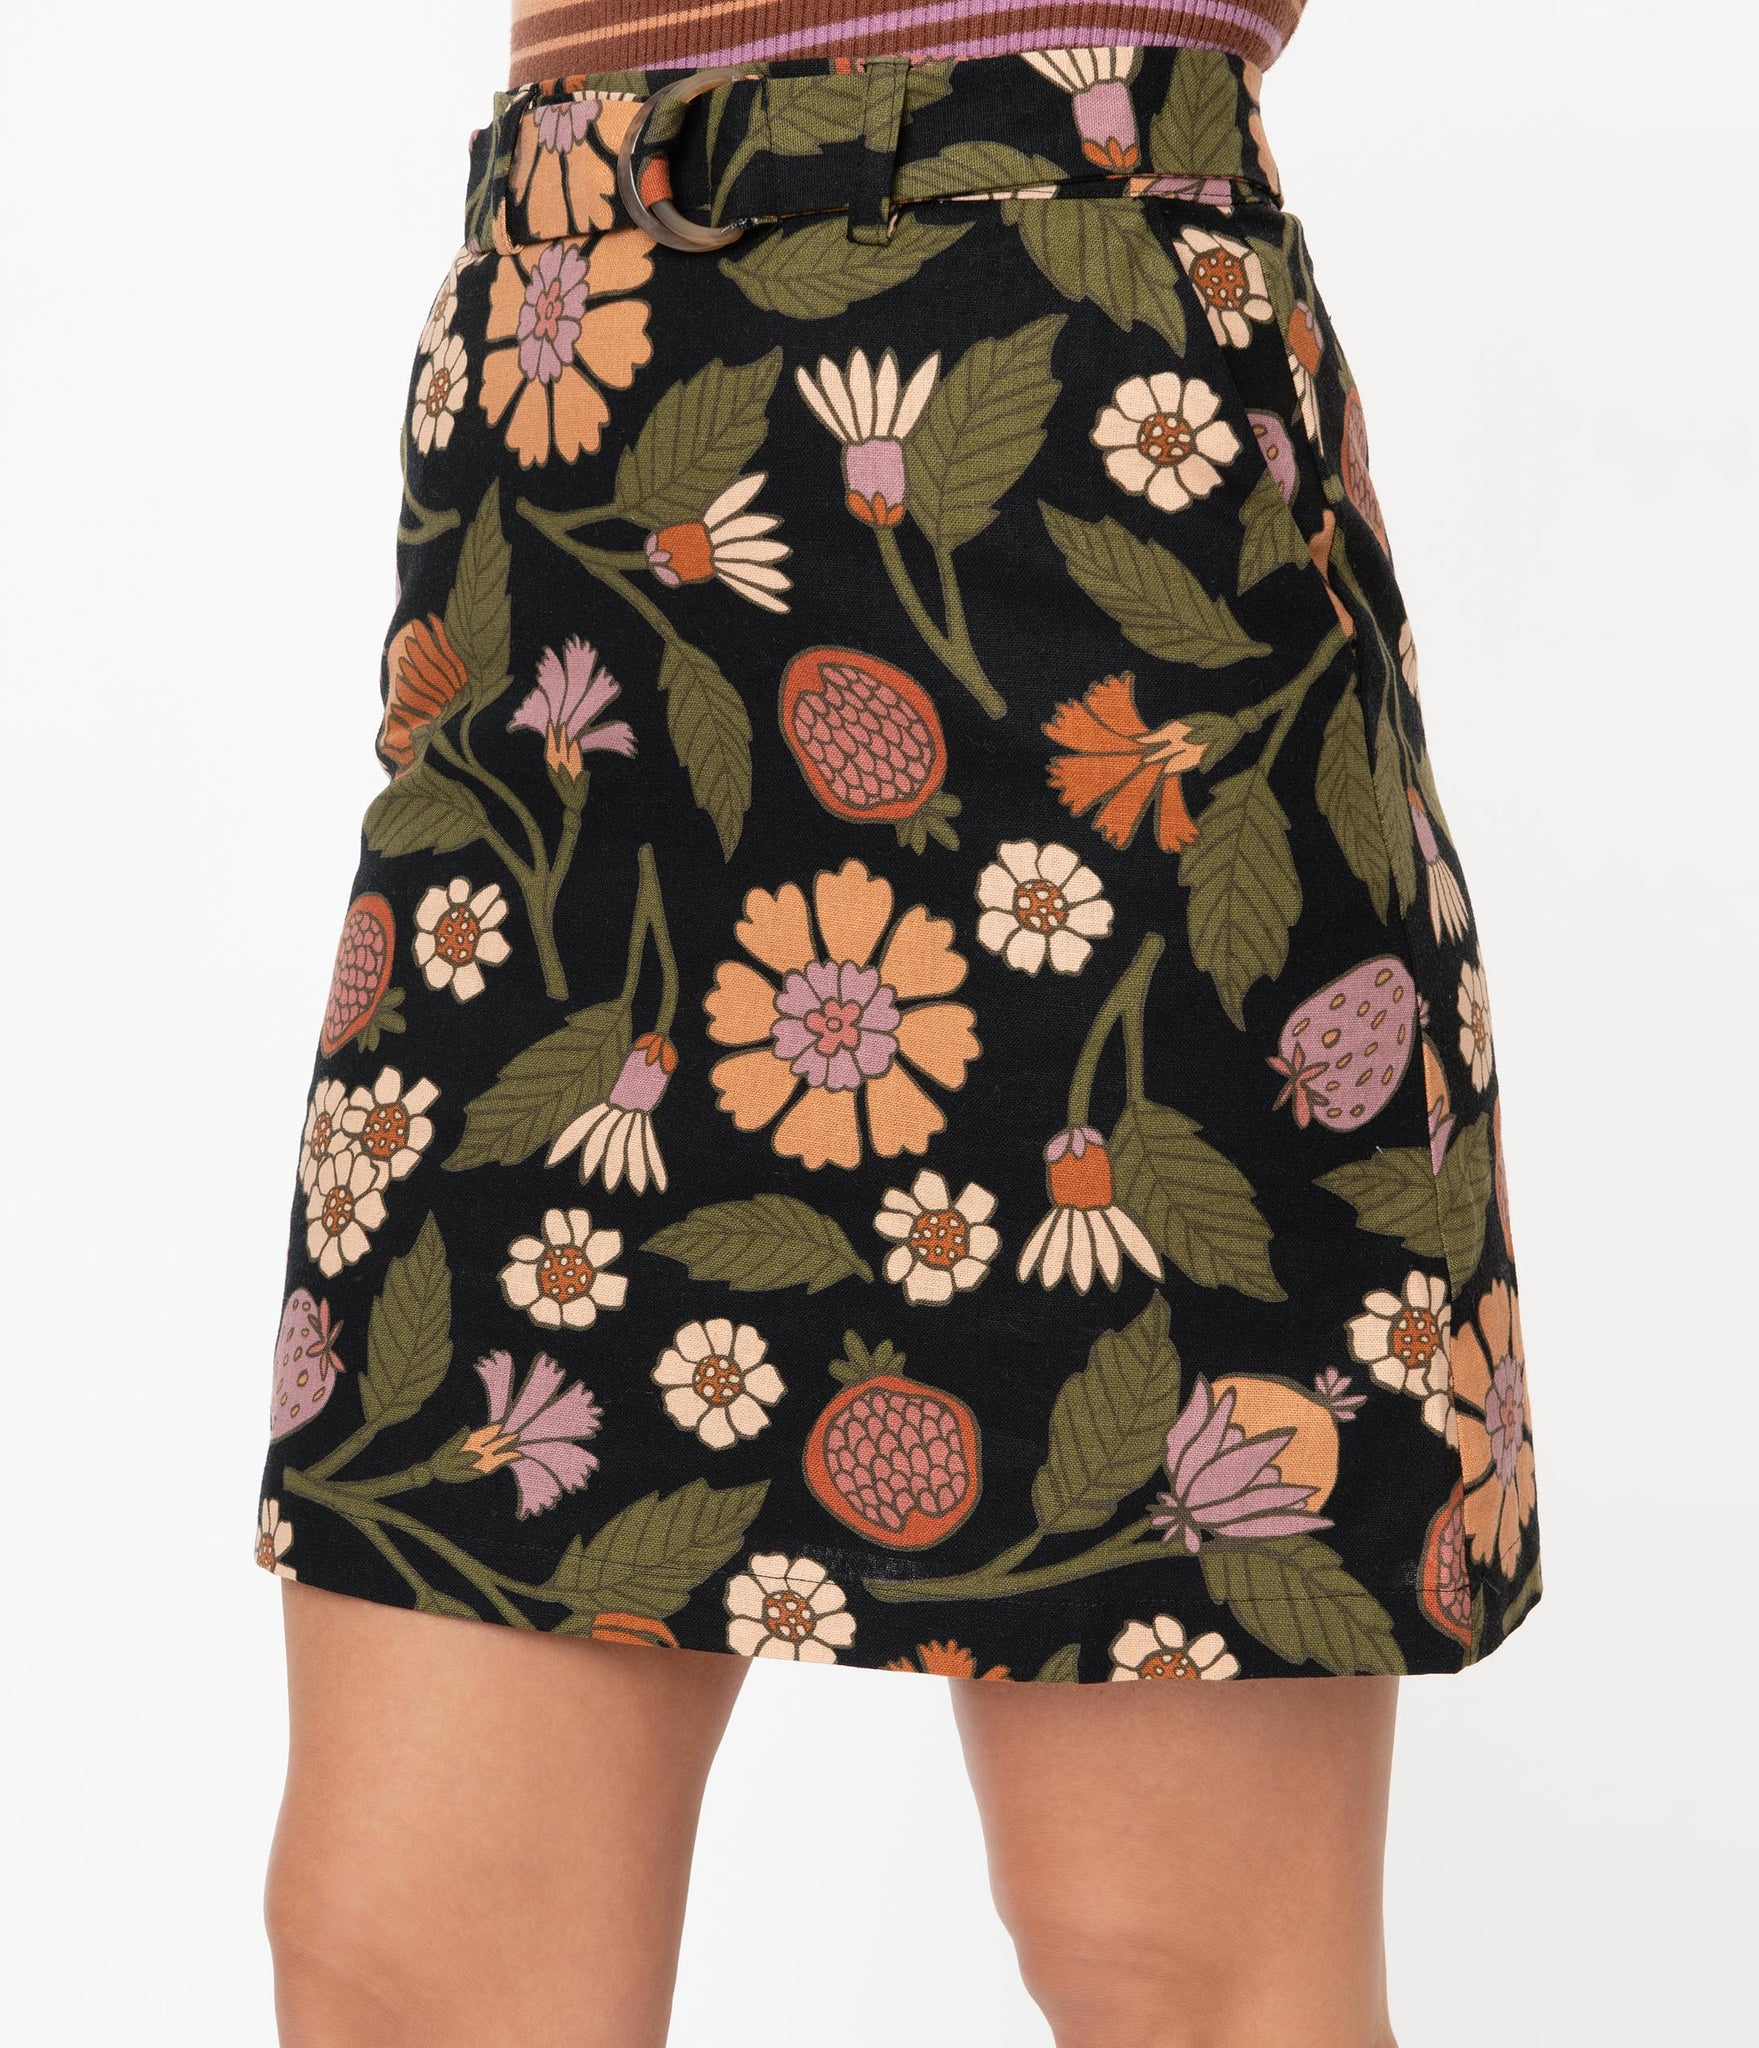 1960s Style Black Fruits & Floral Mini Skirt